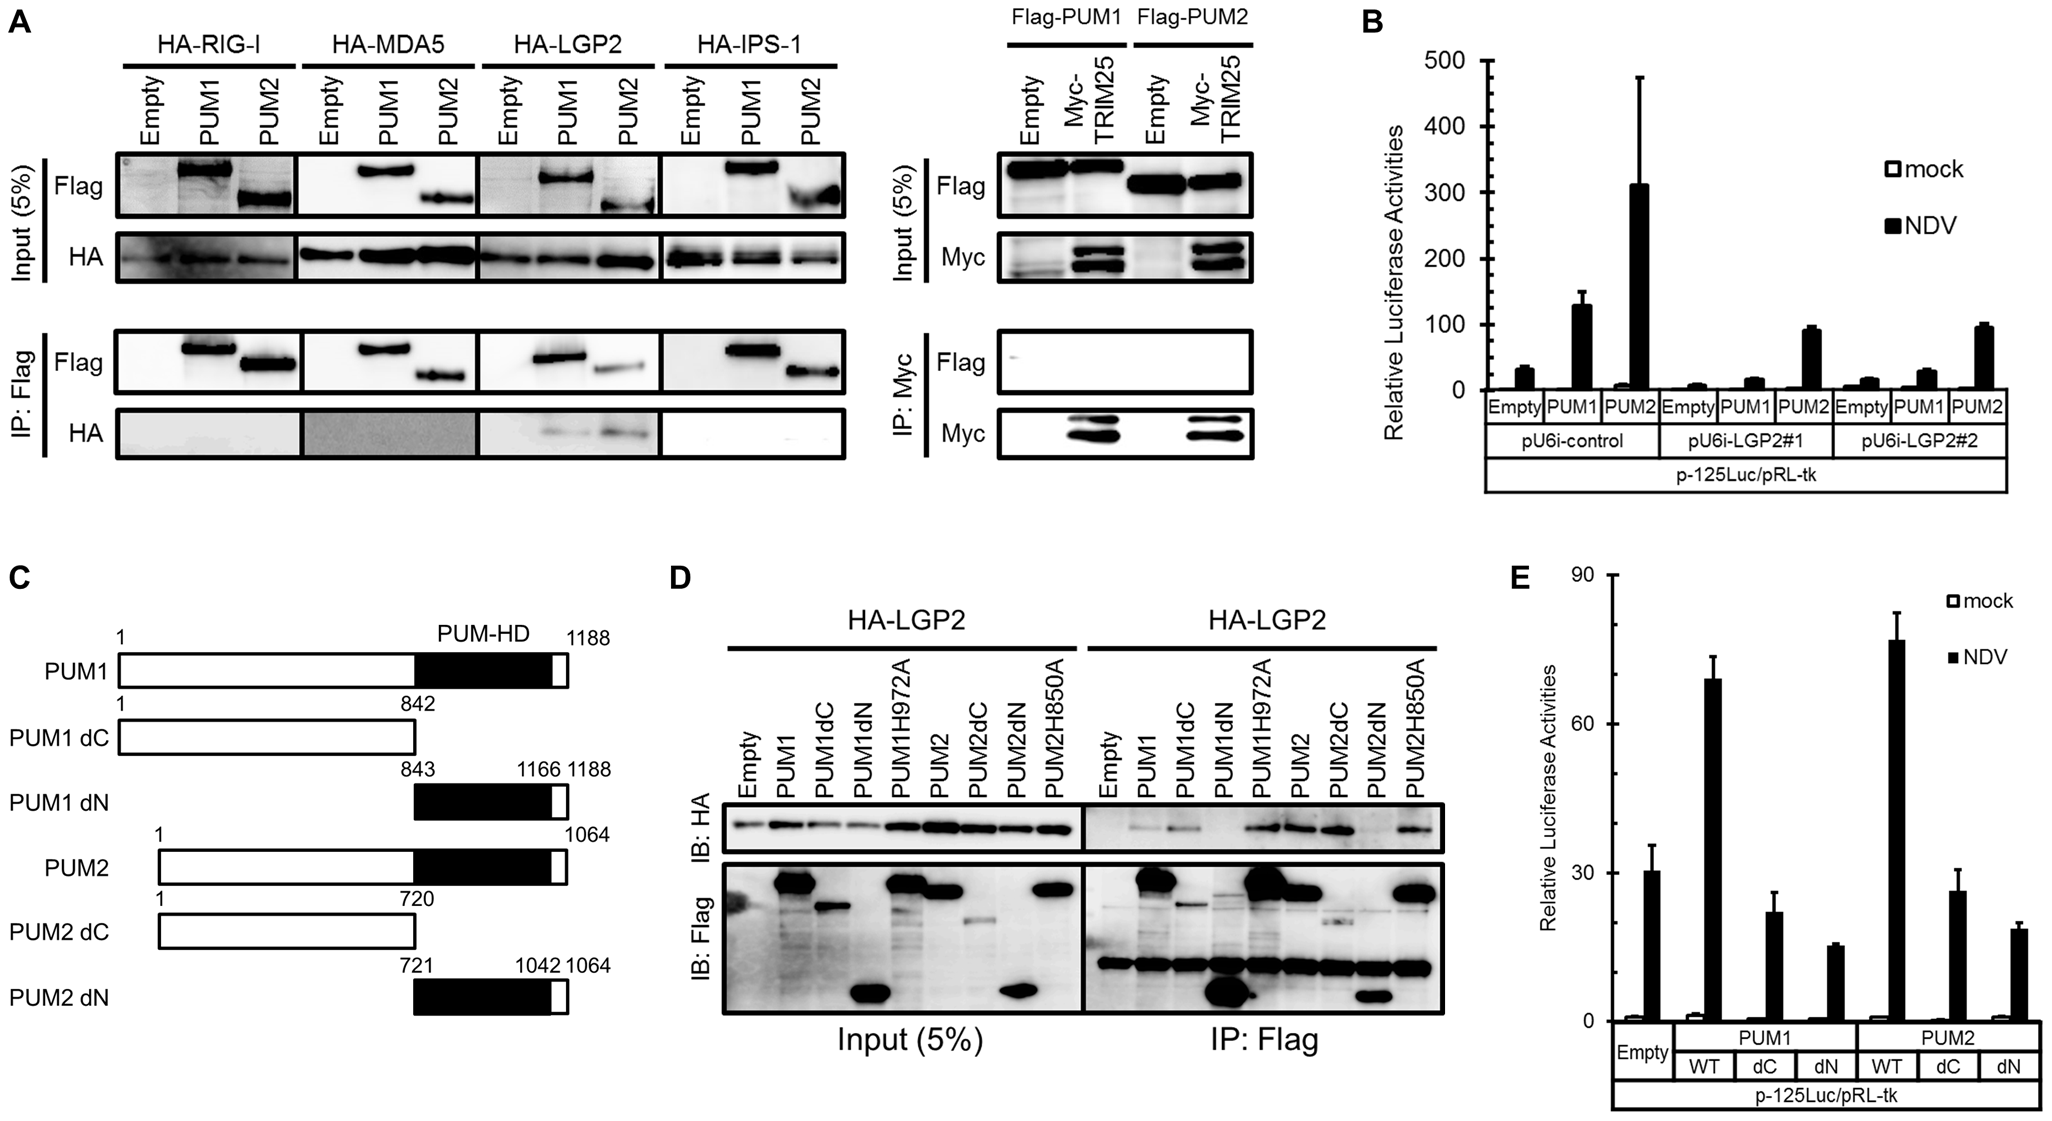 Physical association of PUM1 and PUM2 with LGP2 and involvement of N- and C-terminal domains of PUM1 and PUM2 in IFN induction.